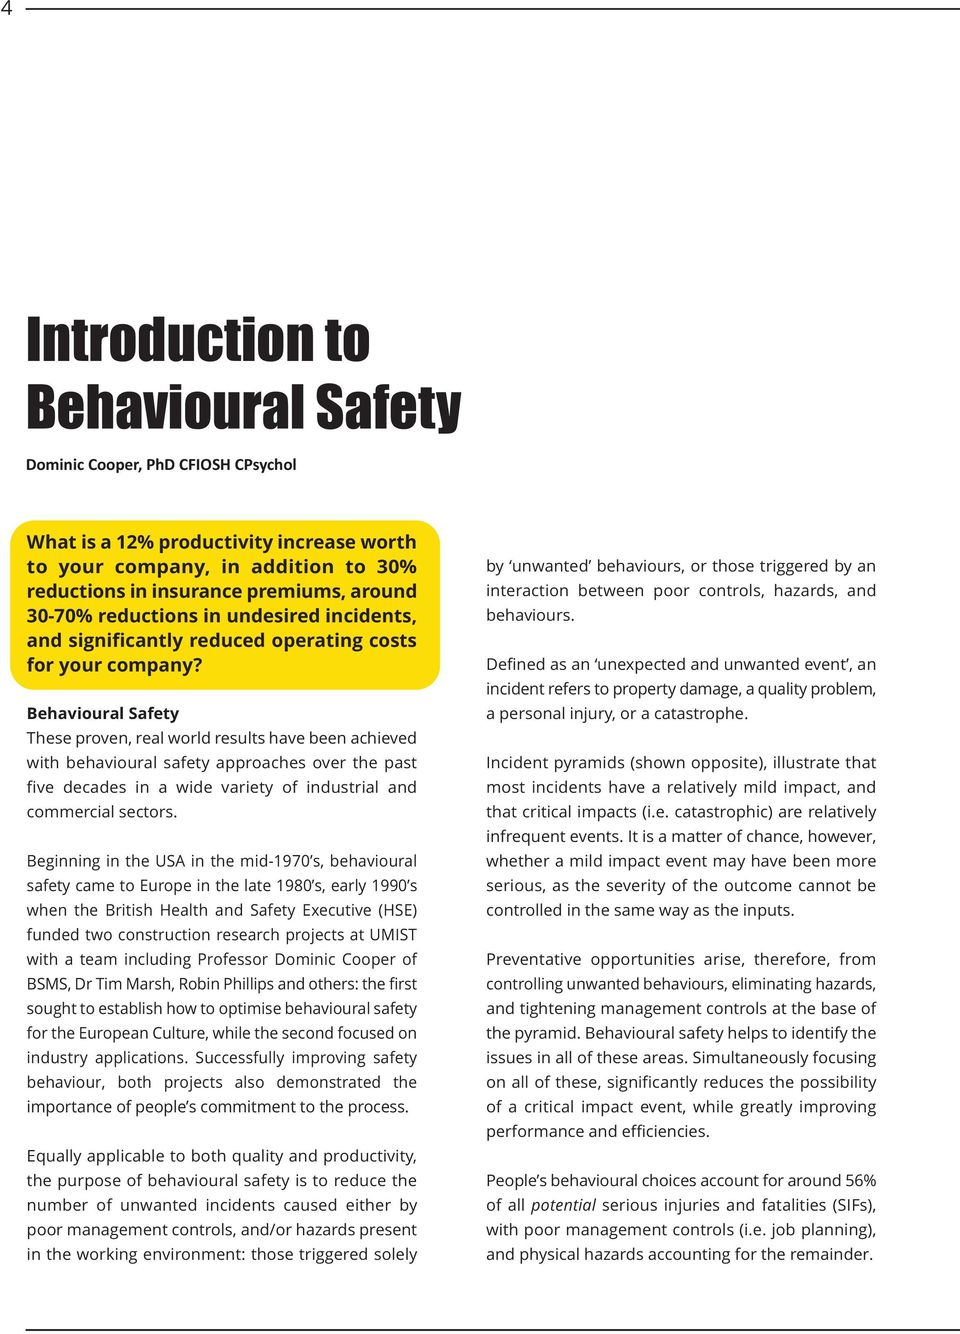 Behavioural Safety These proven, real world results have been achieved with behavioural safety approaches over the past five decades in a wide variety of industrial and commercial sectors.